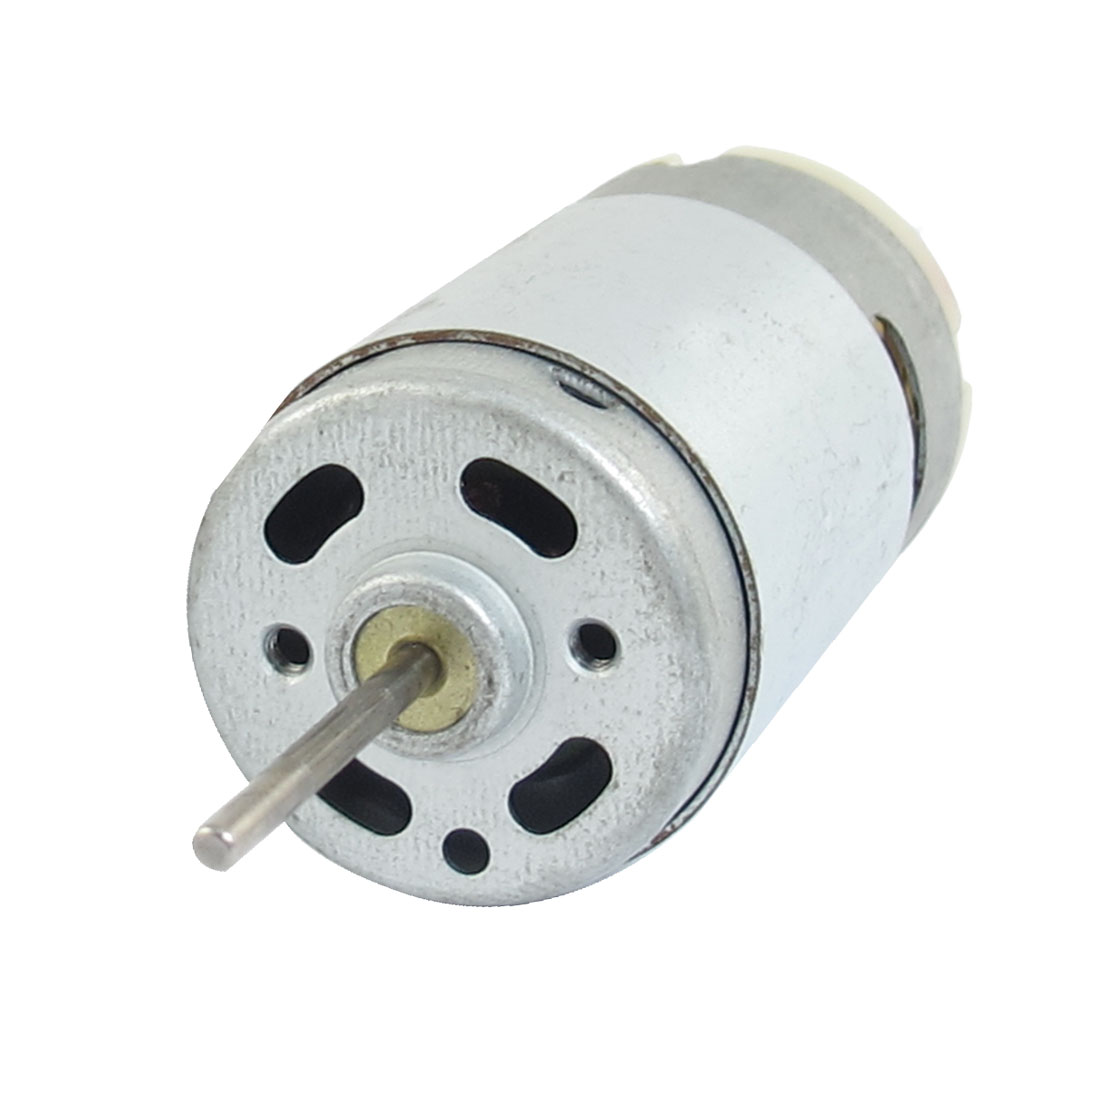 3400RPM DC 24V 2.5mm Shaft Diameter 2 Terminals Electric Motor